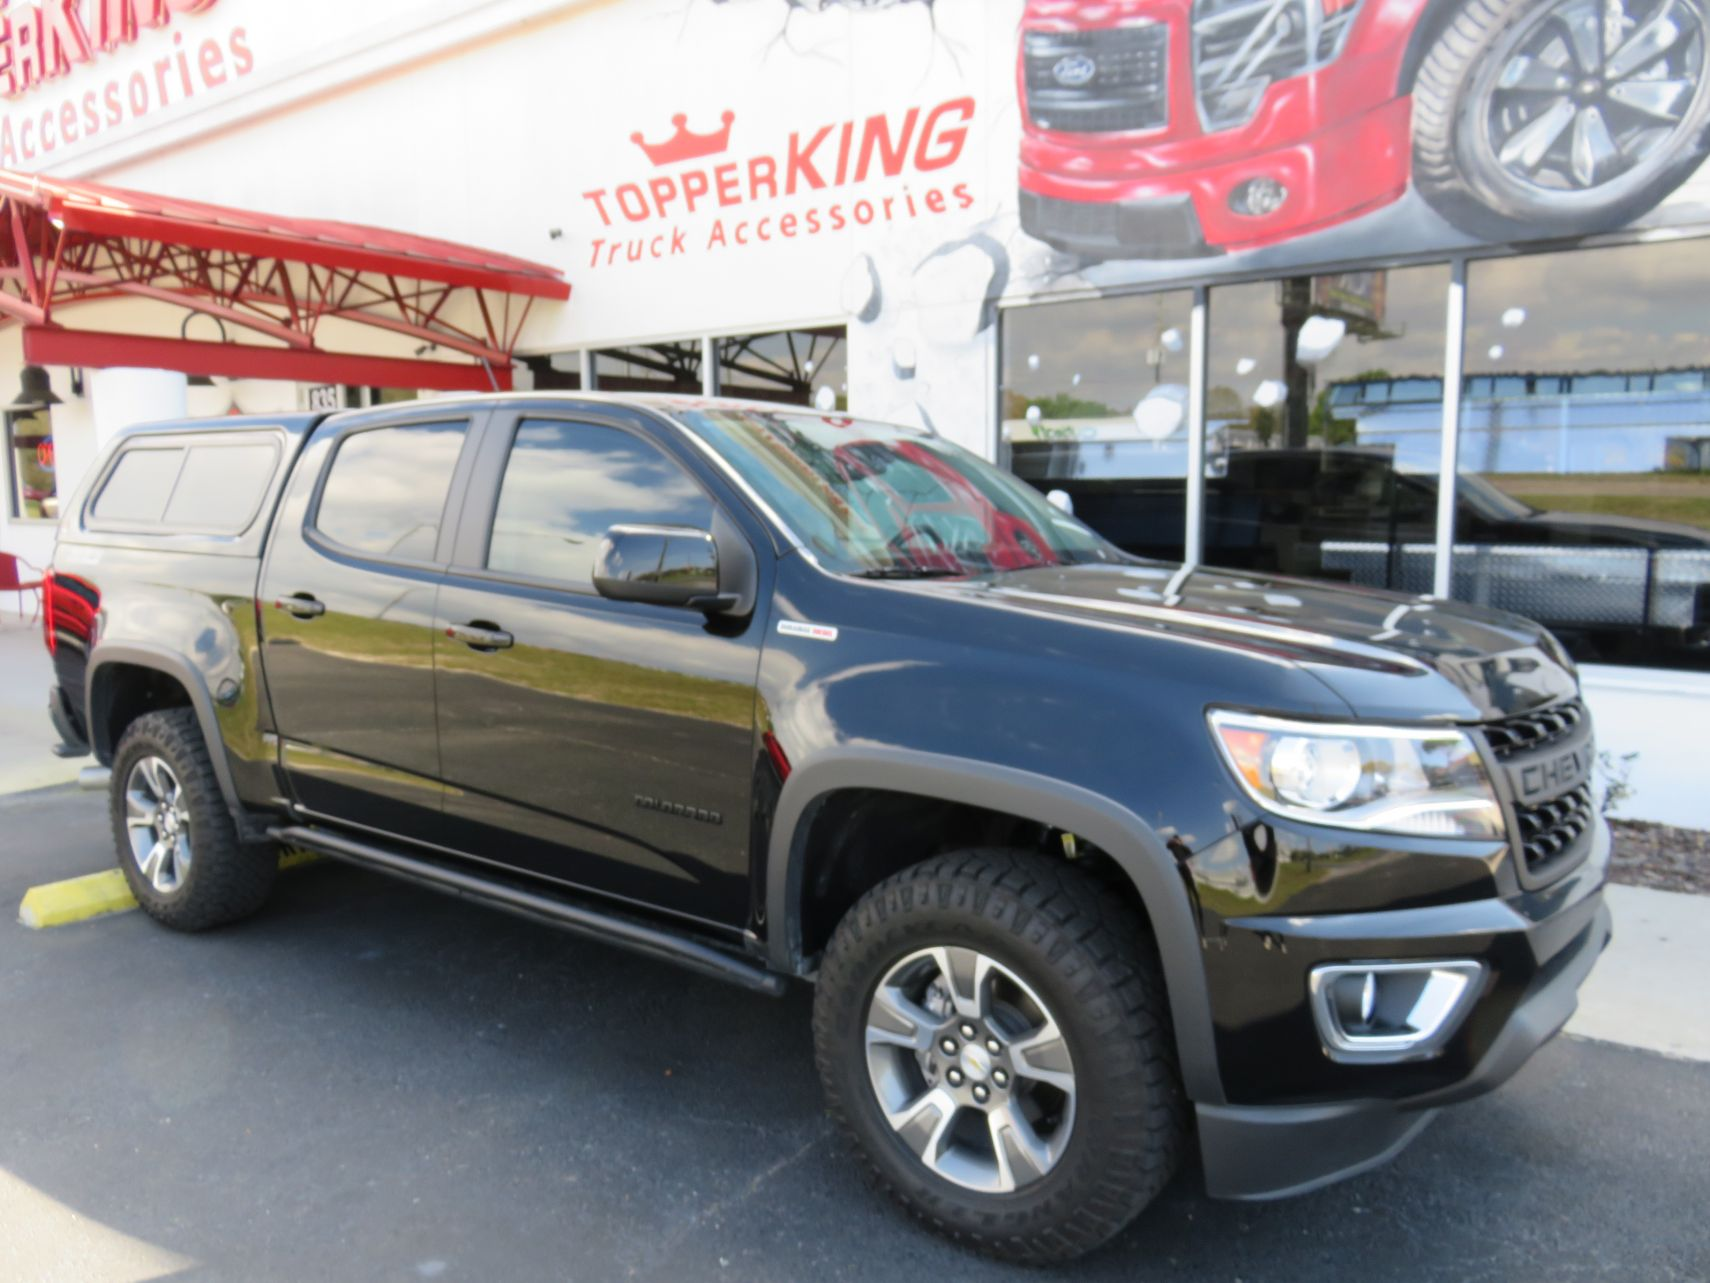 2020 Chevrolet Colorado with LEER 100XR, Side Steps, Tint, Hitch by TopperKING Brandon 813-689-2449 or Clearwater FL 727-530-9066. Call us!